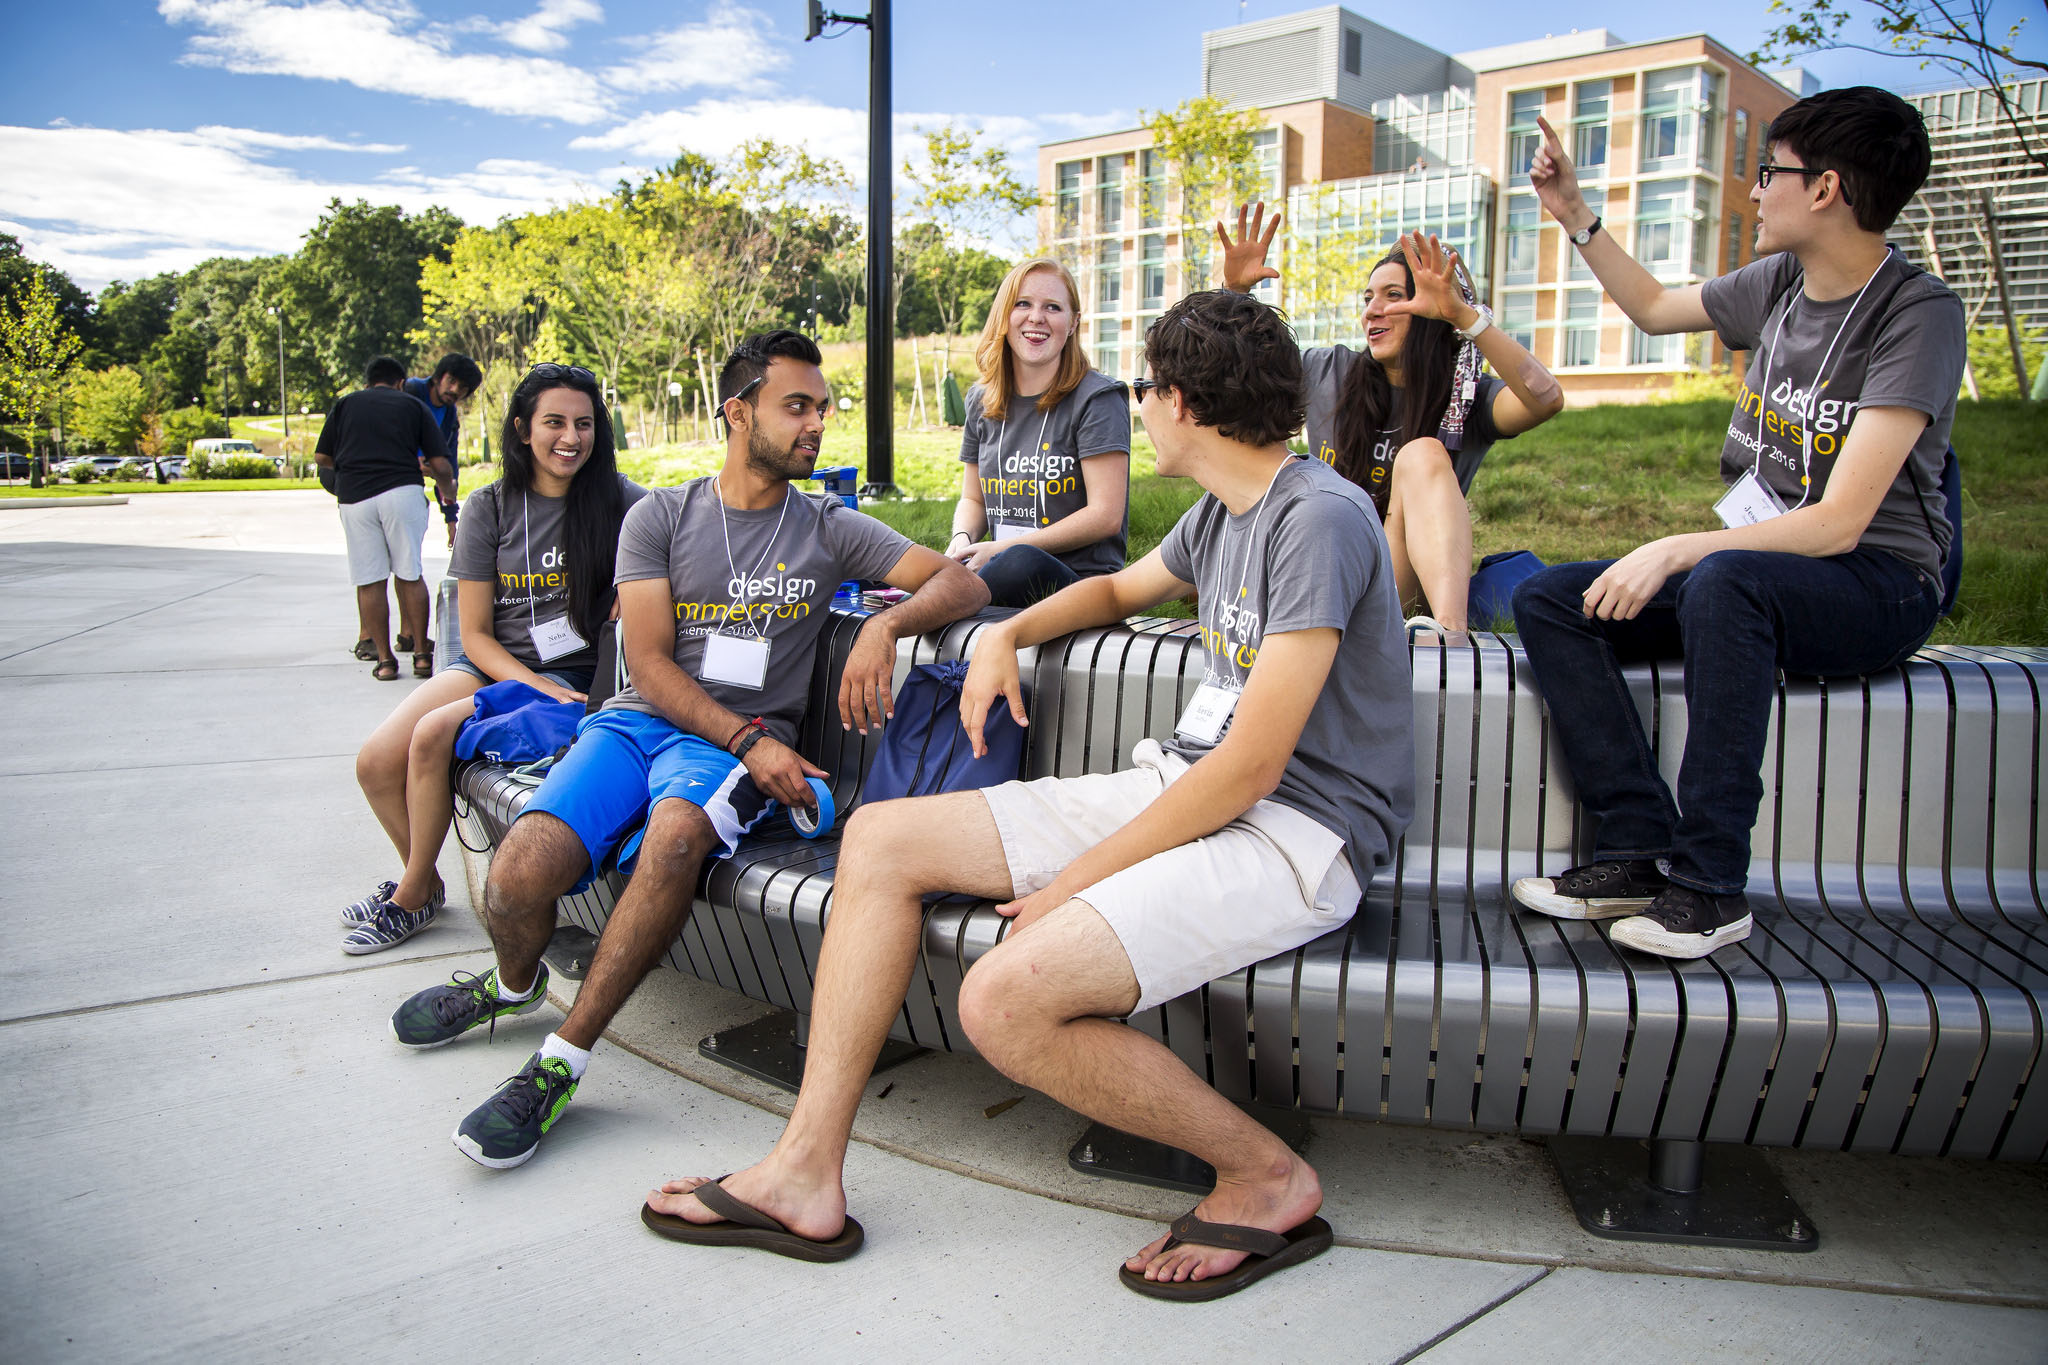 A photograph of students spending time on the Eda U. Gerstacker Grove